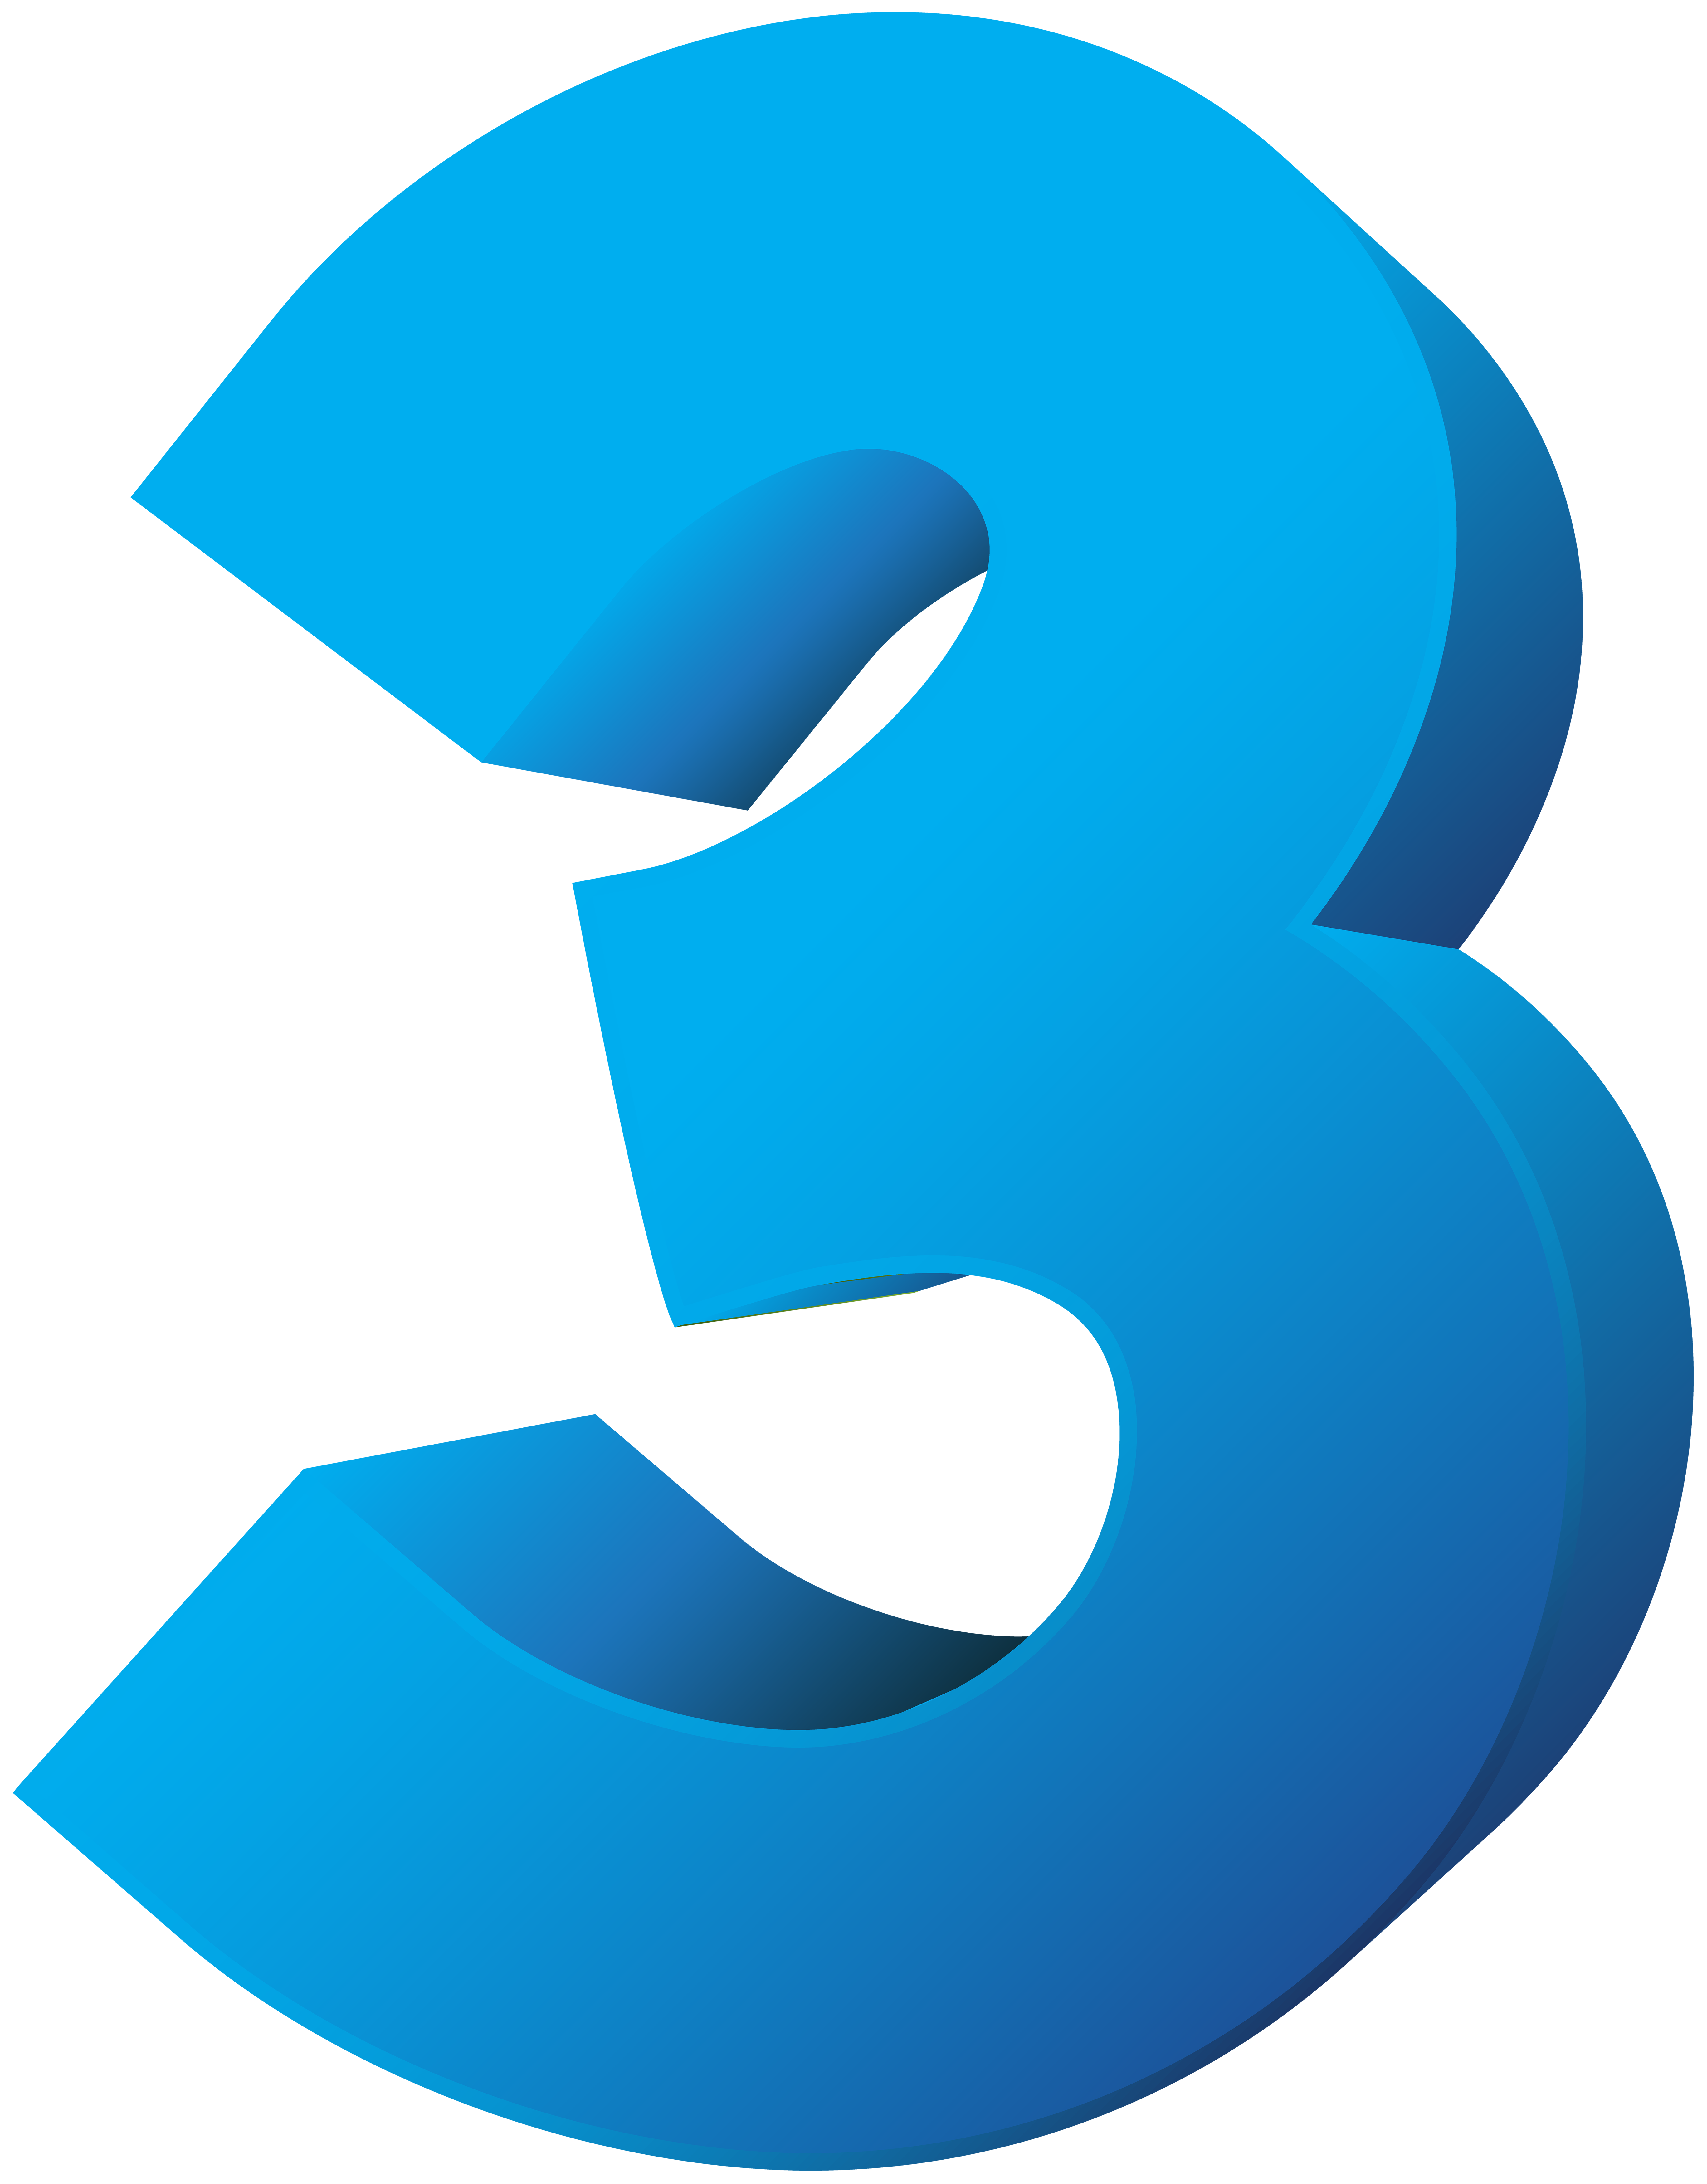 Blue number transparent png. Numbers clipart three image free library